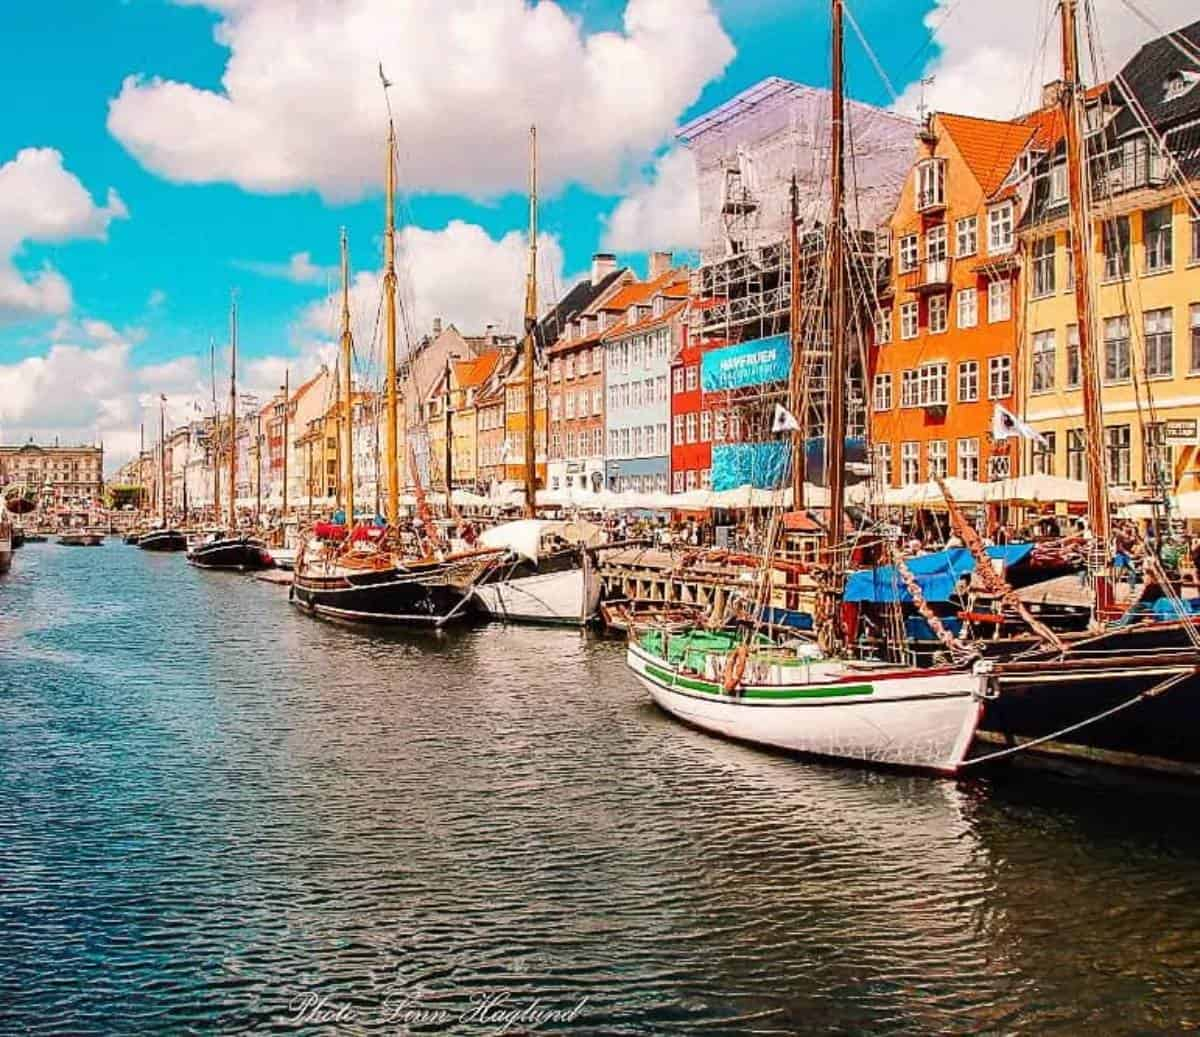 Bright coloured buildings with umbrellas and boats lining a canal on a sunny day.